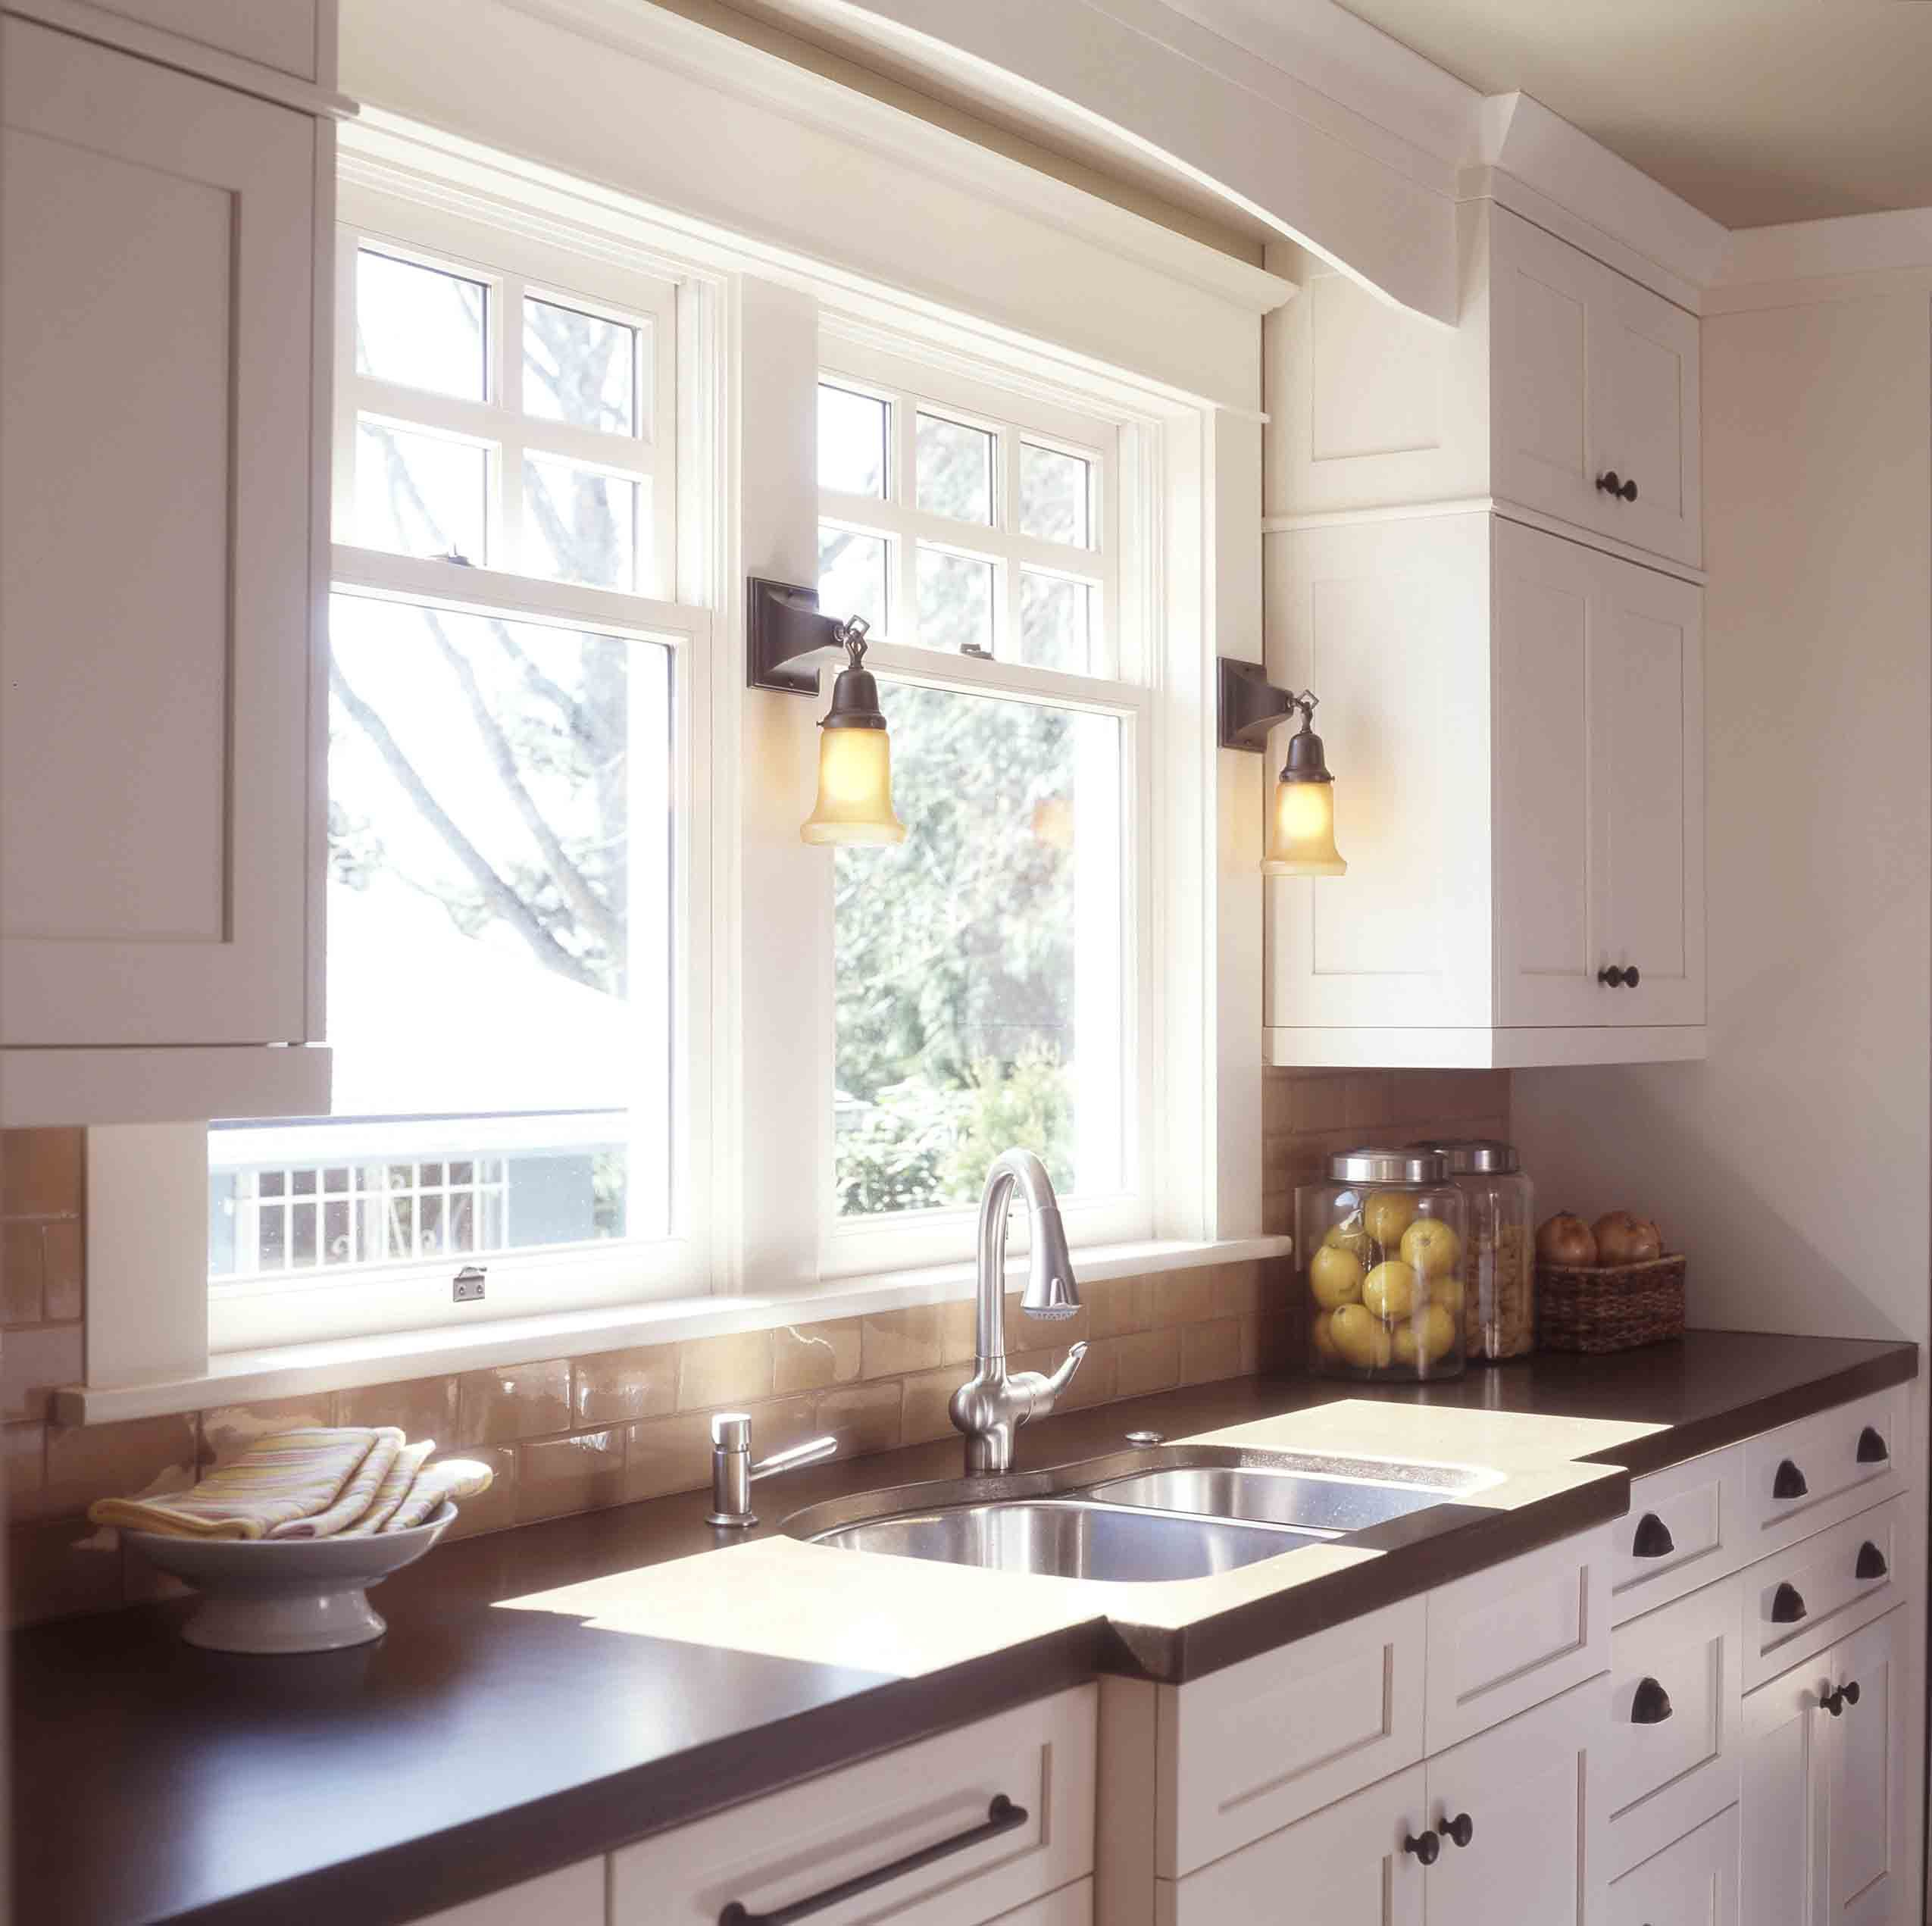 Kitchen Cabinets Mission Style: Craftsman Style Kitchens On Pinterest